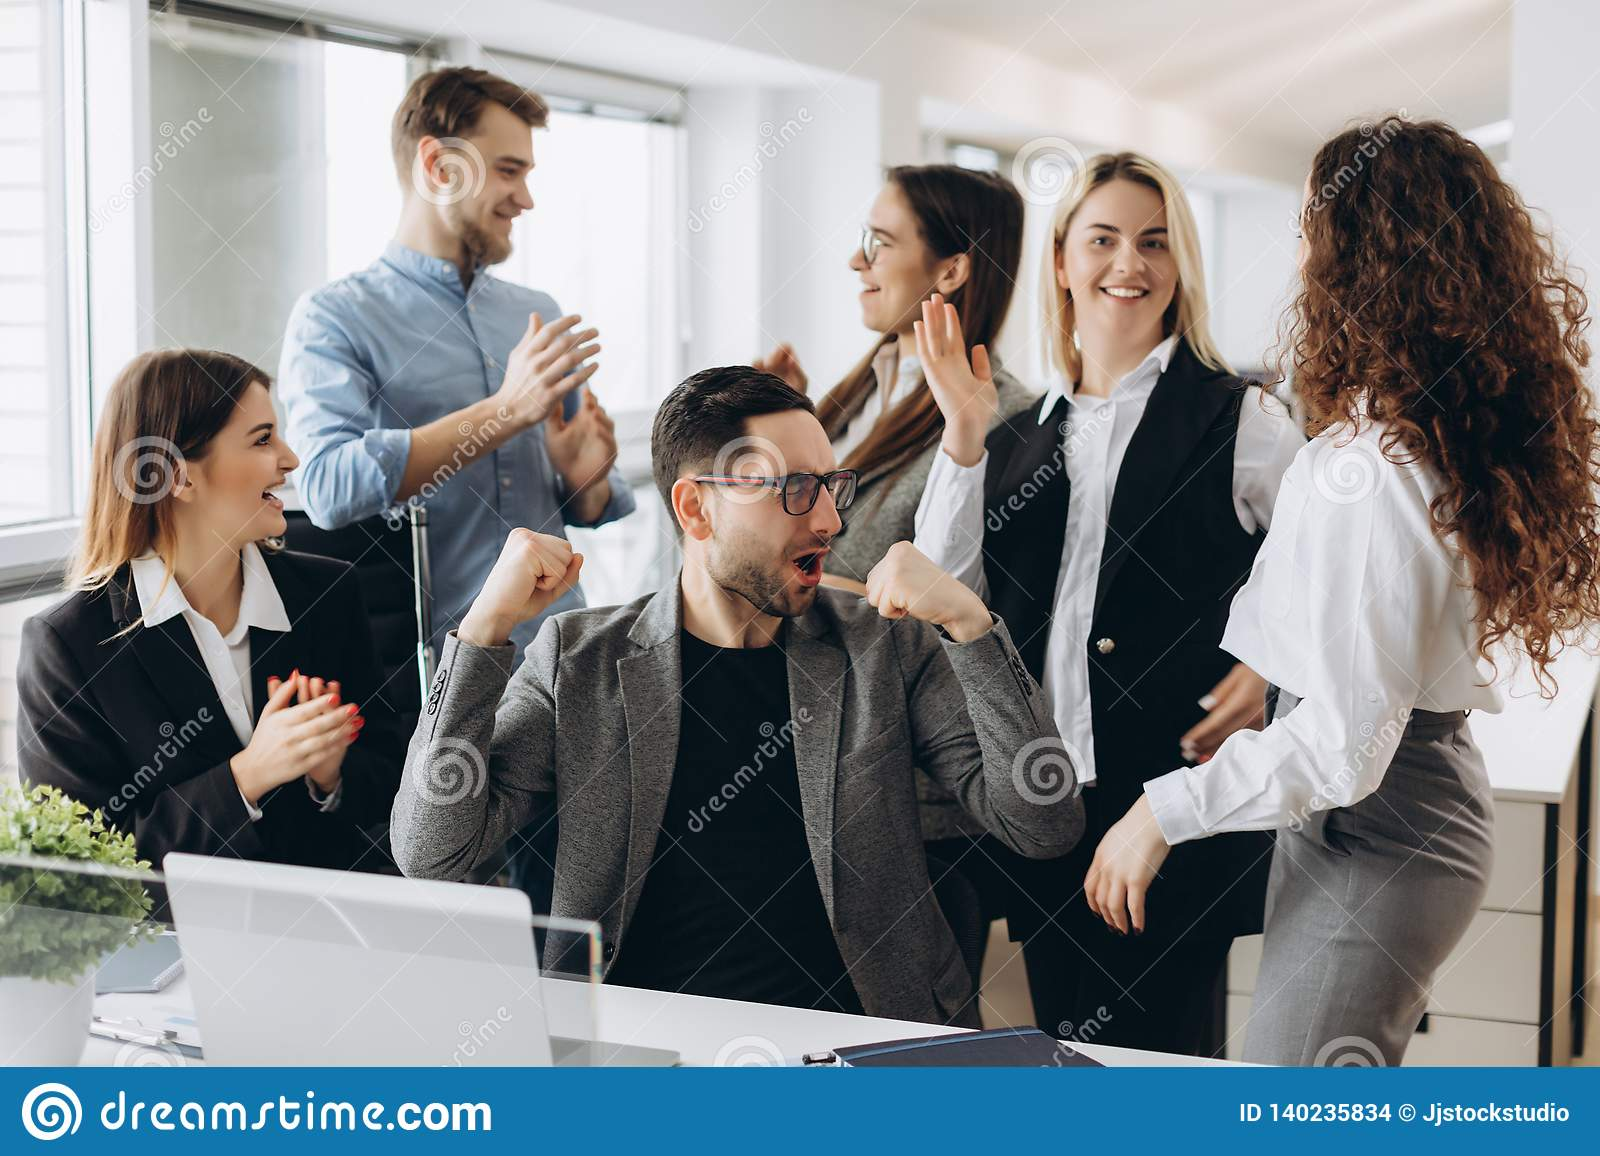 Successful young business people are raising hands in fists and screaming with happiness while working with a computer in business